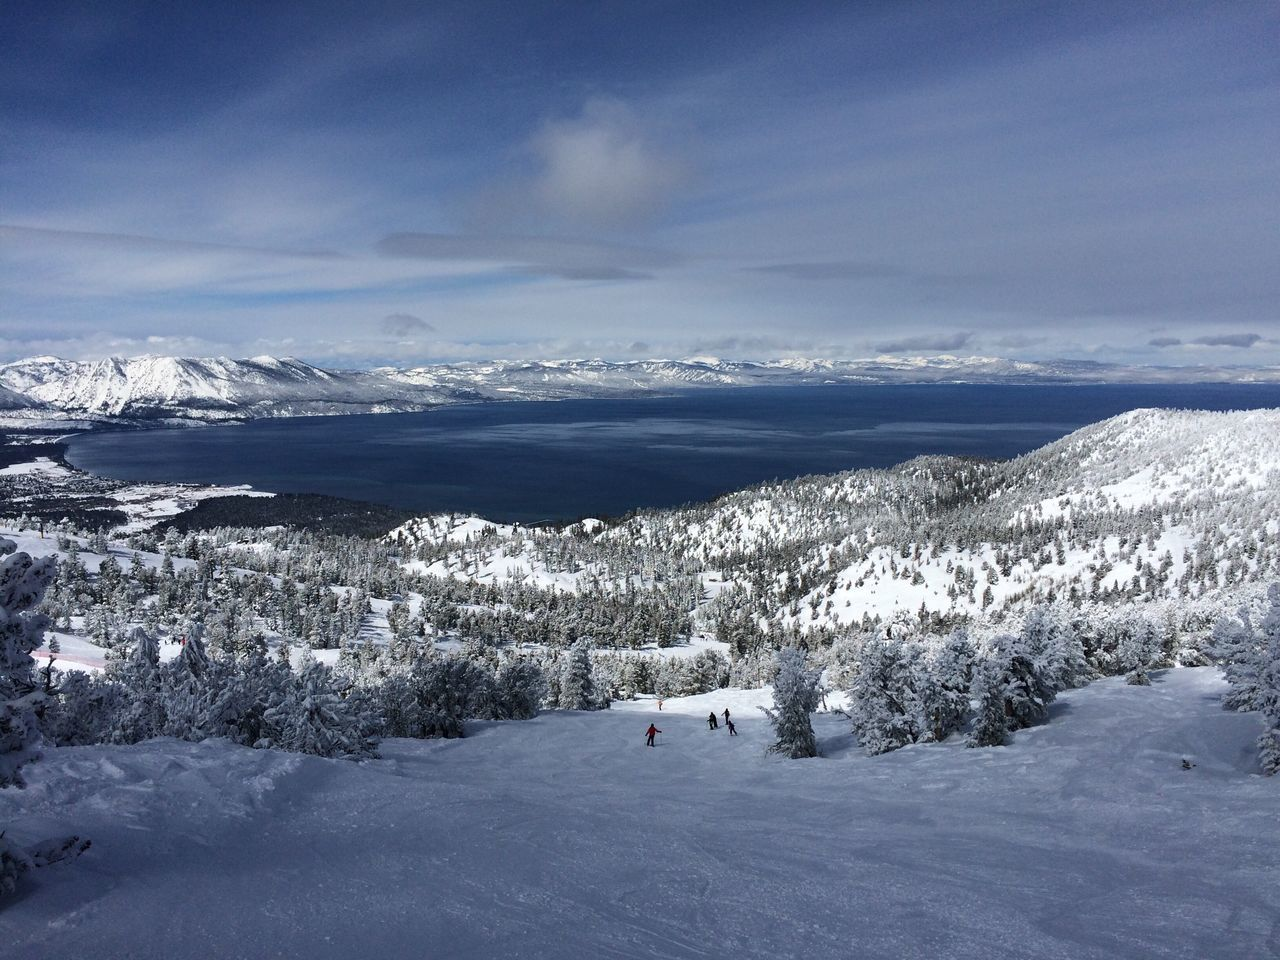 Historic Record Winter Lake Tahoe, California. 13 Meter/40 feet of Snow. A winter wonderland! Best skiing ever. Snow Cold Temperature Winter Beauty In Nature Tranquil Scene Landscape Sierra Nevada Mountains IPhone 5 Photography Beauty In Nature Heavenly Ski Resort